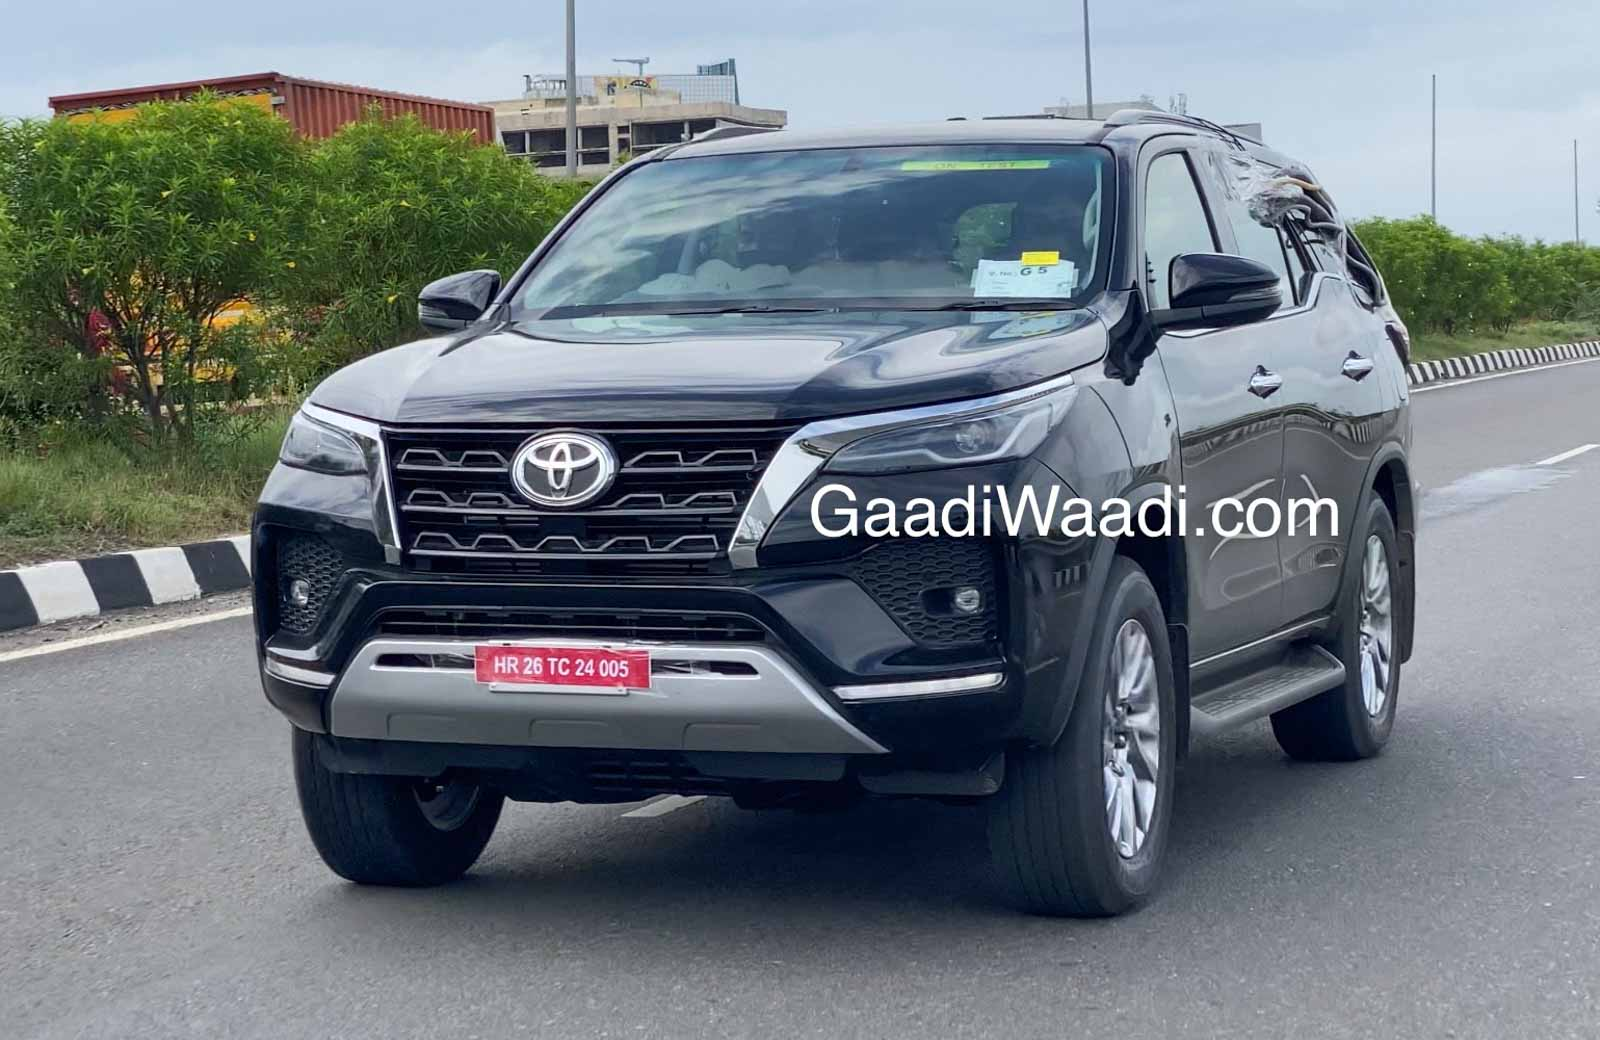 Toyota Fortuner Facelift India